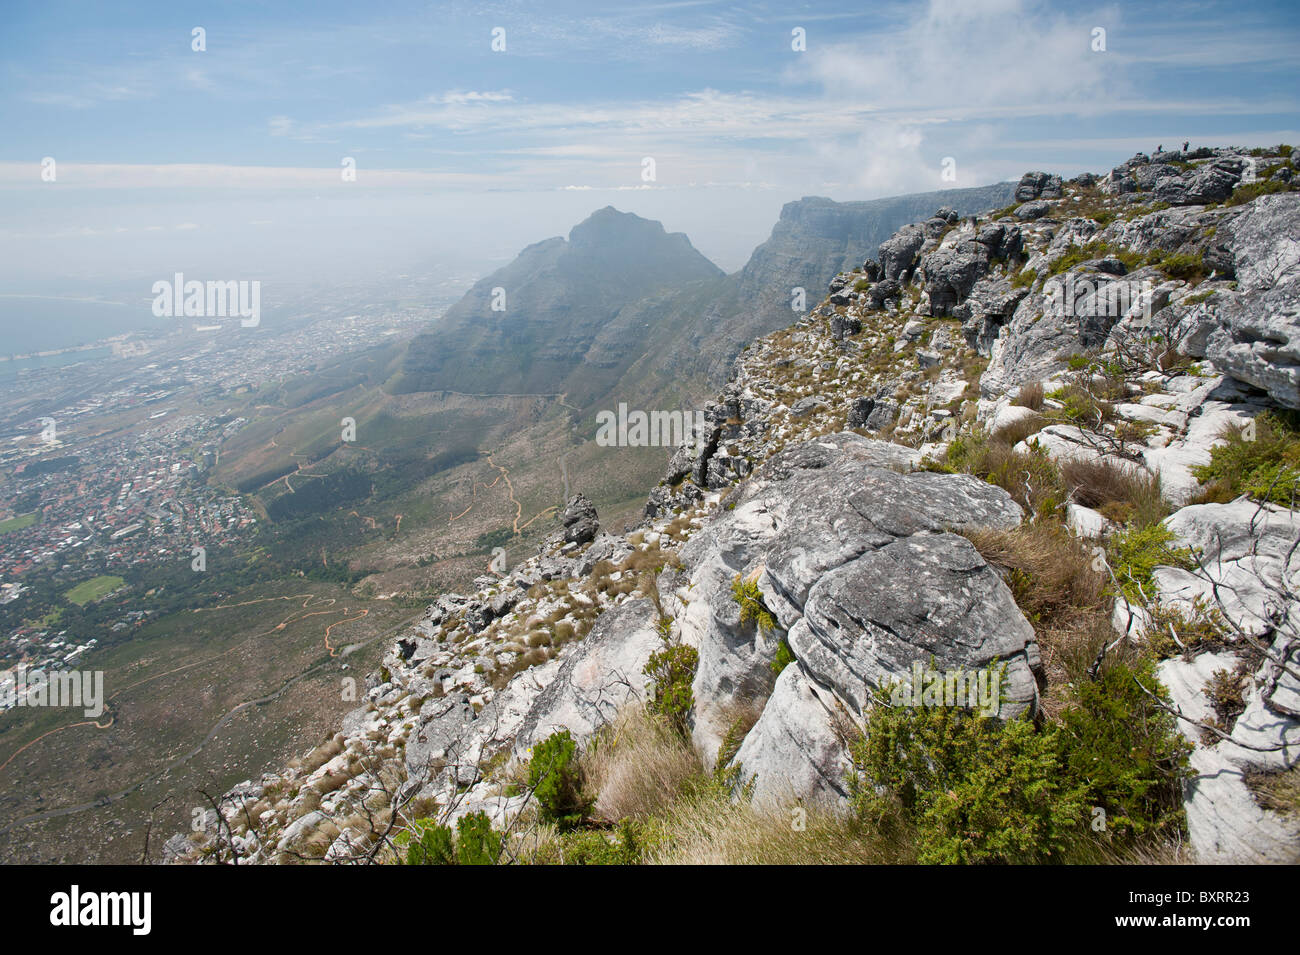 View of Table Mountain from the top looking towards Devil's Peak. - Stock Image